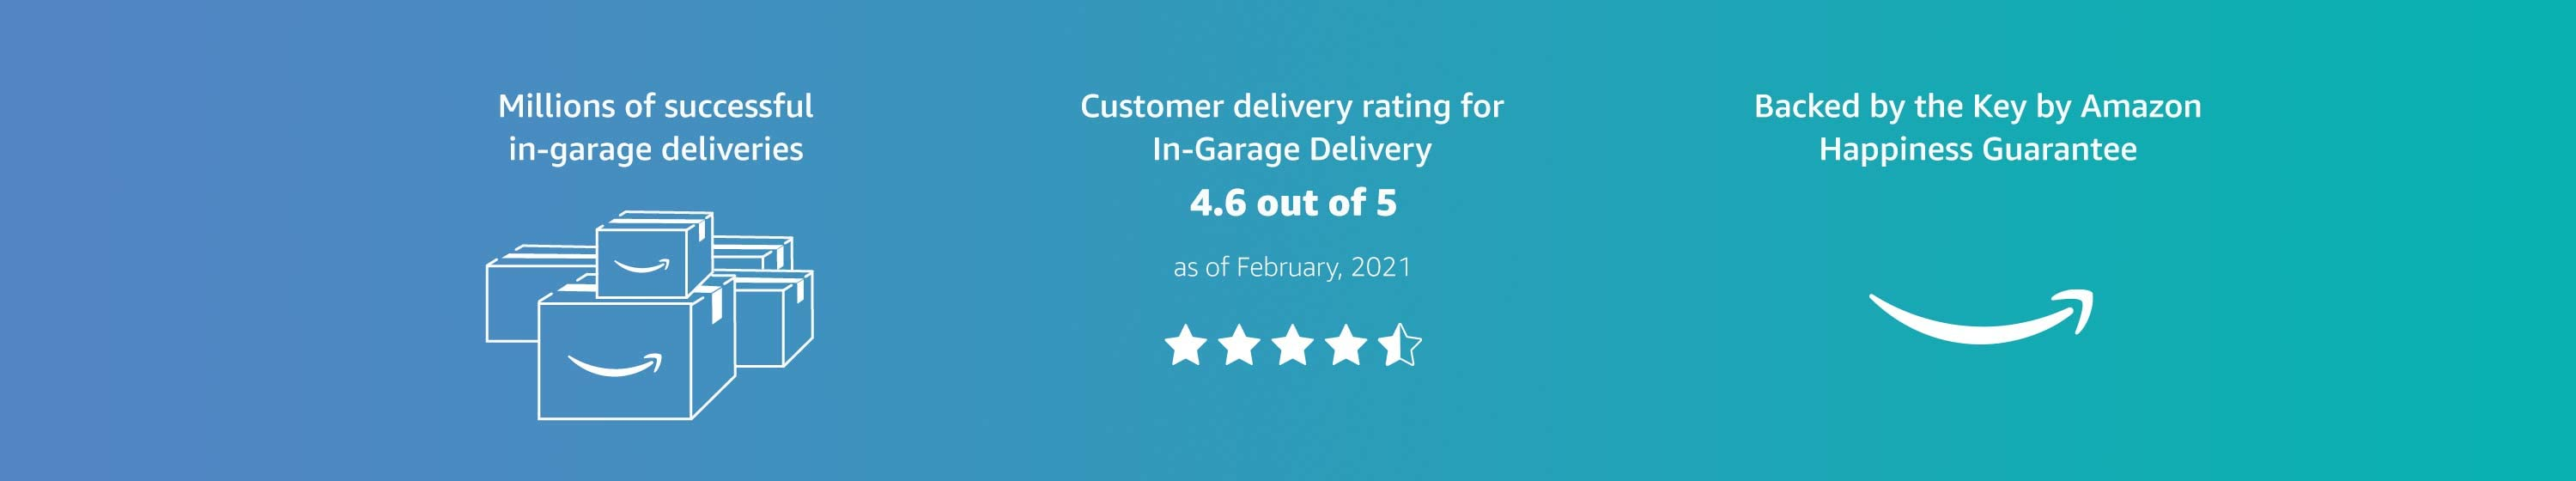 Customer delivery rating for In-Garage Delivery 4.6 out of 5 as of February, 2021